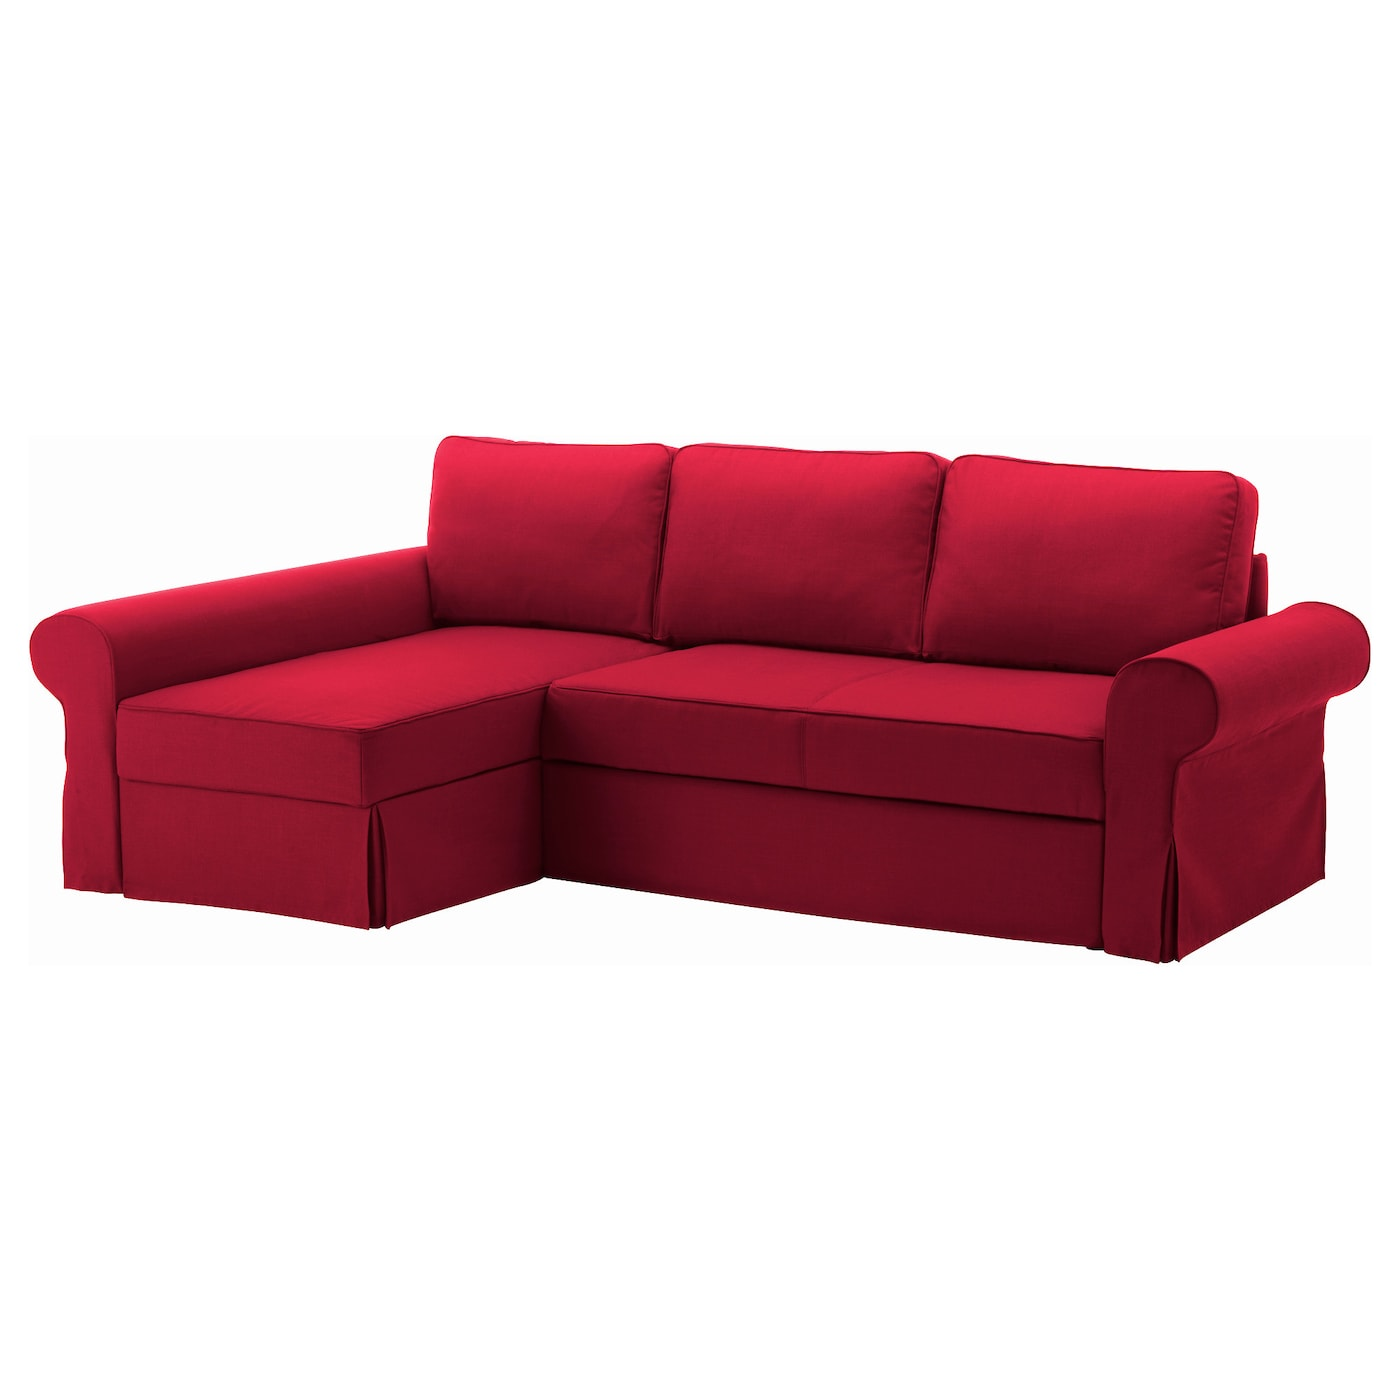 Backabro cover sofa bed with chaise longue nordvalla red for Sofa bed cover